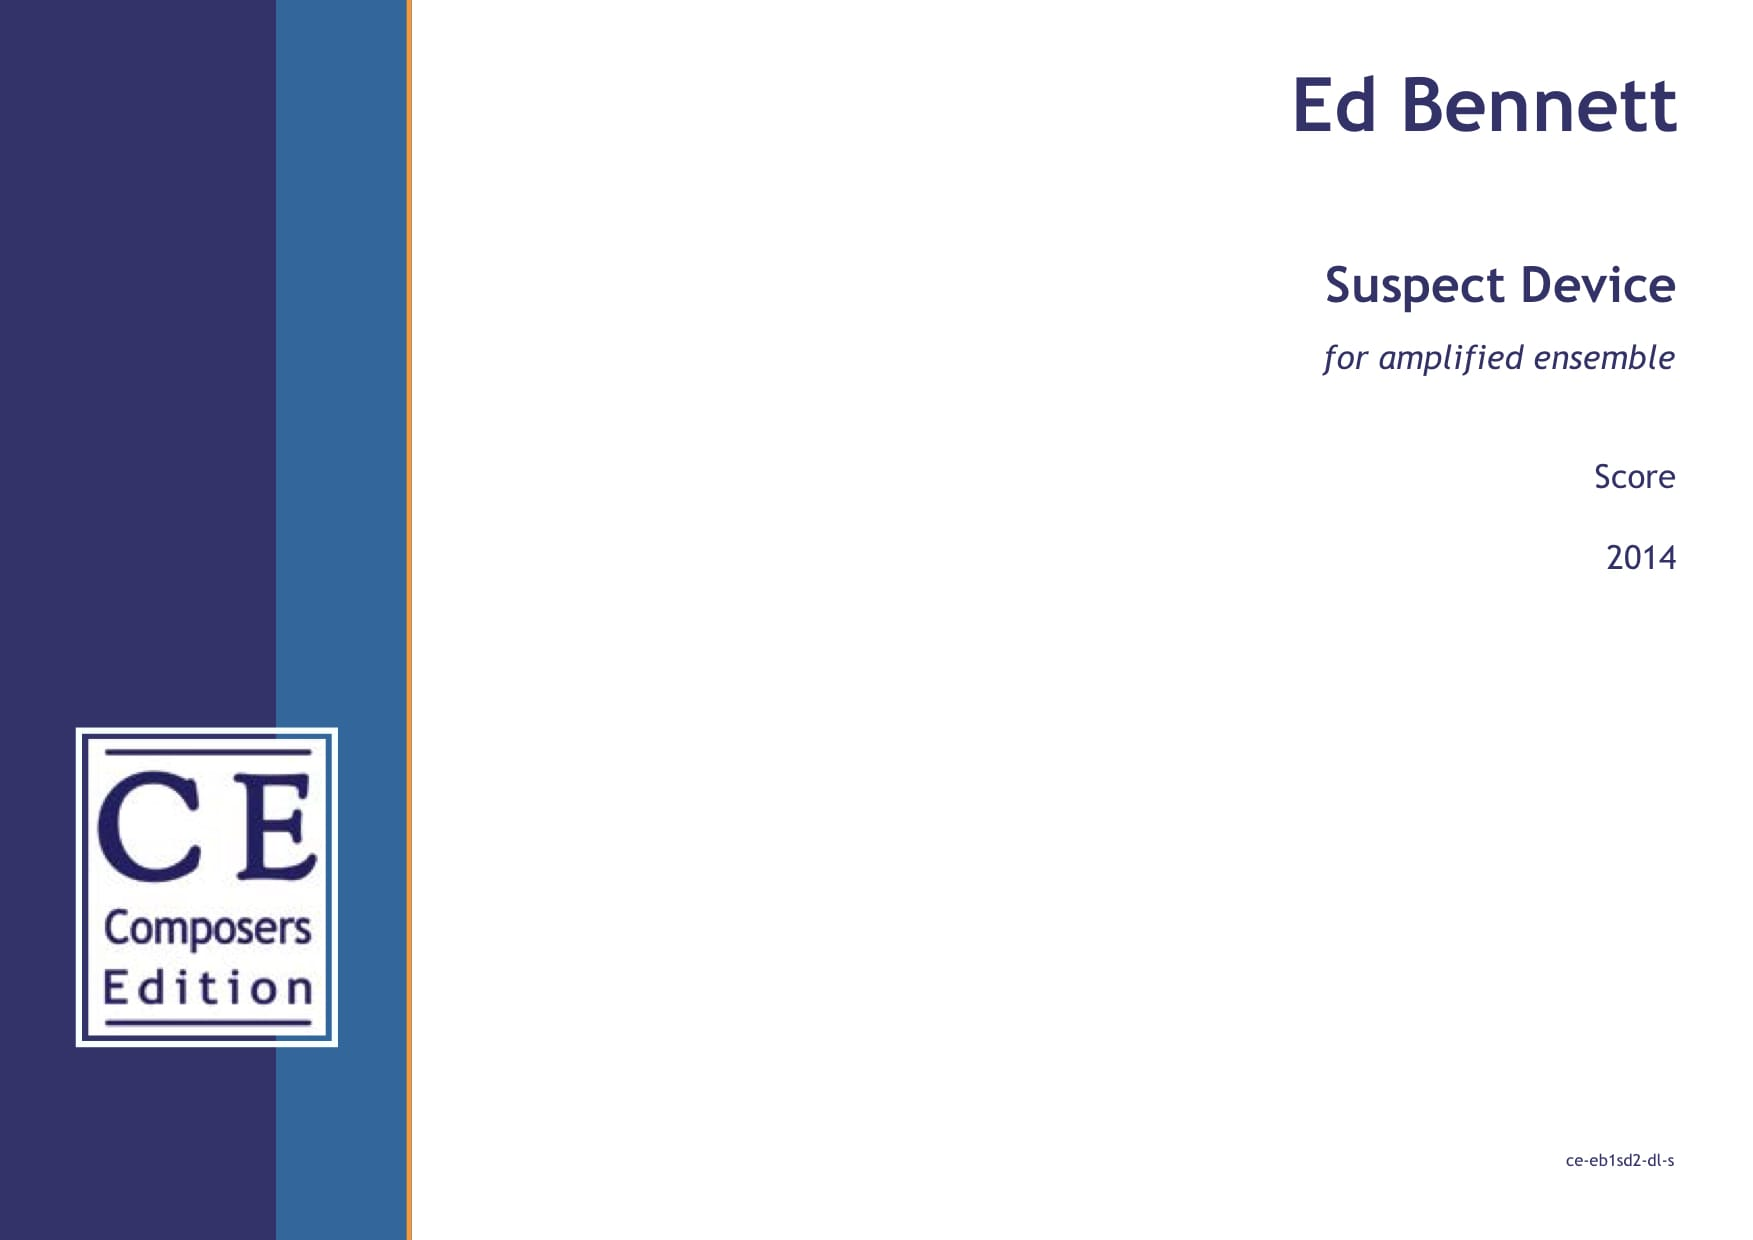 Ed Bennett: Suspect Device for amplified ensemble